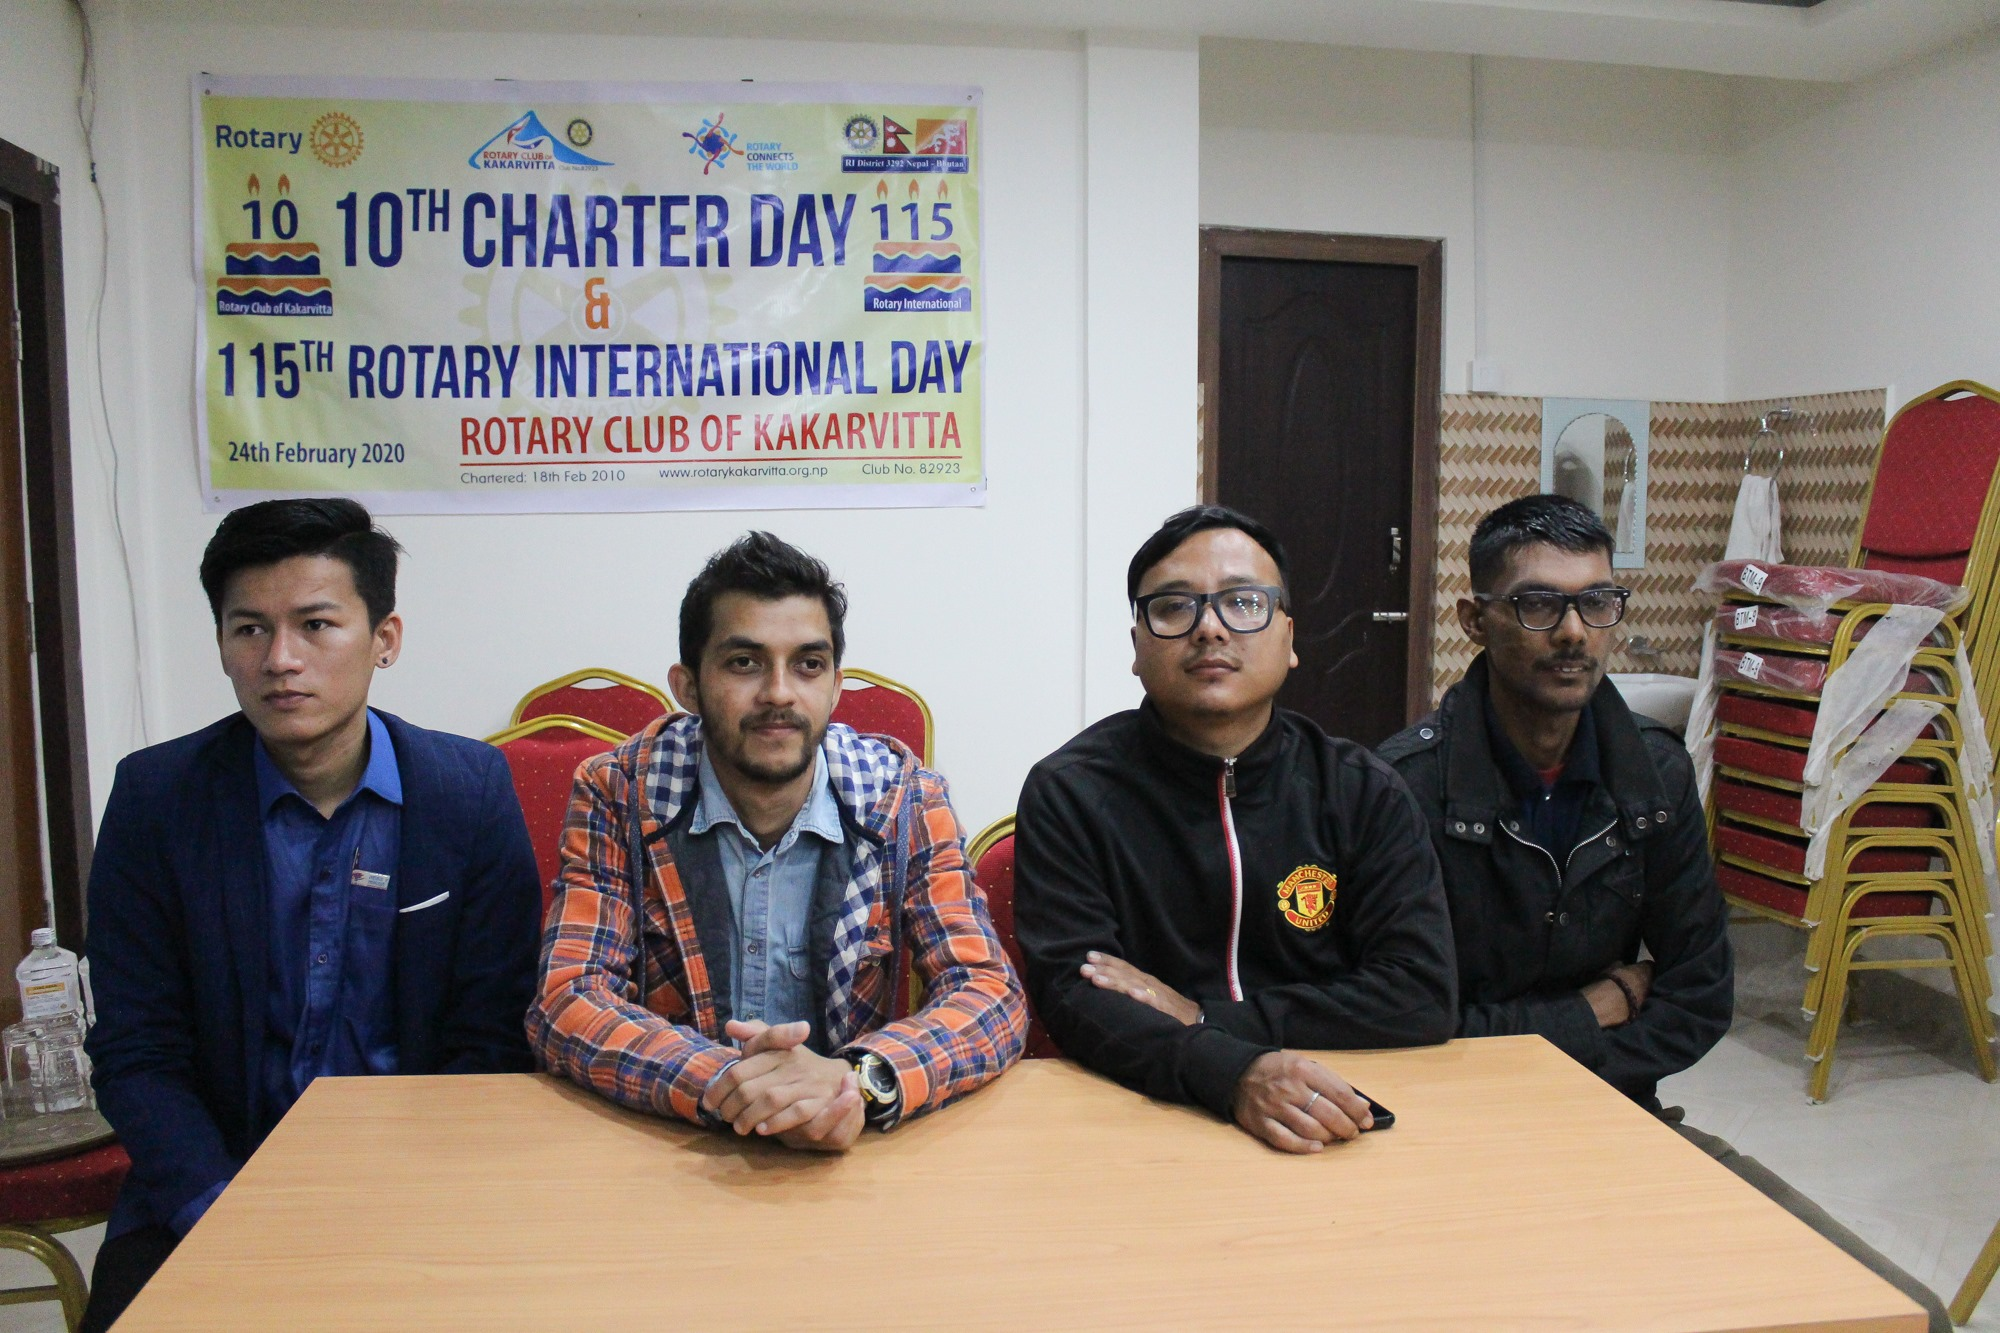 10th Charter Day 115th Rotary International Day 6